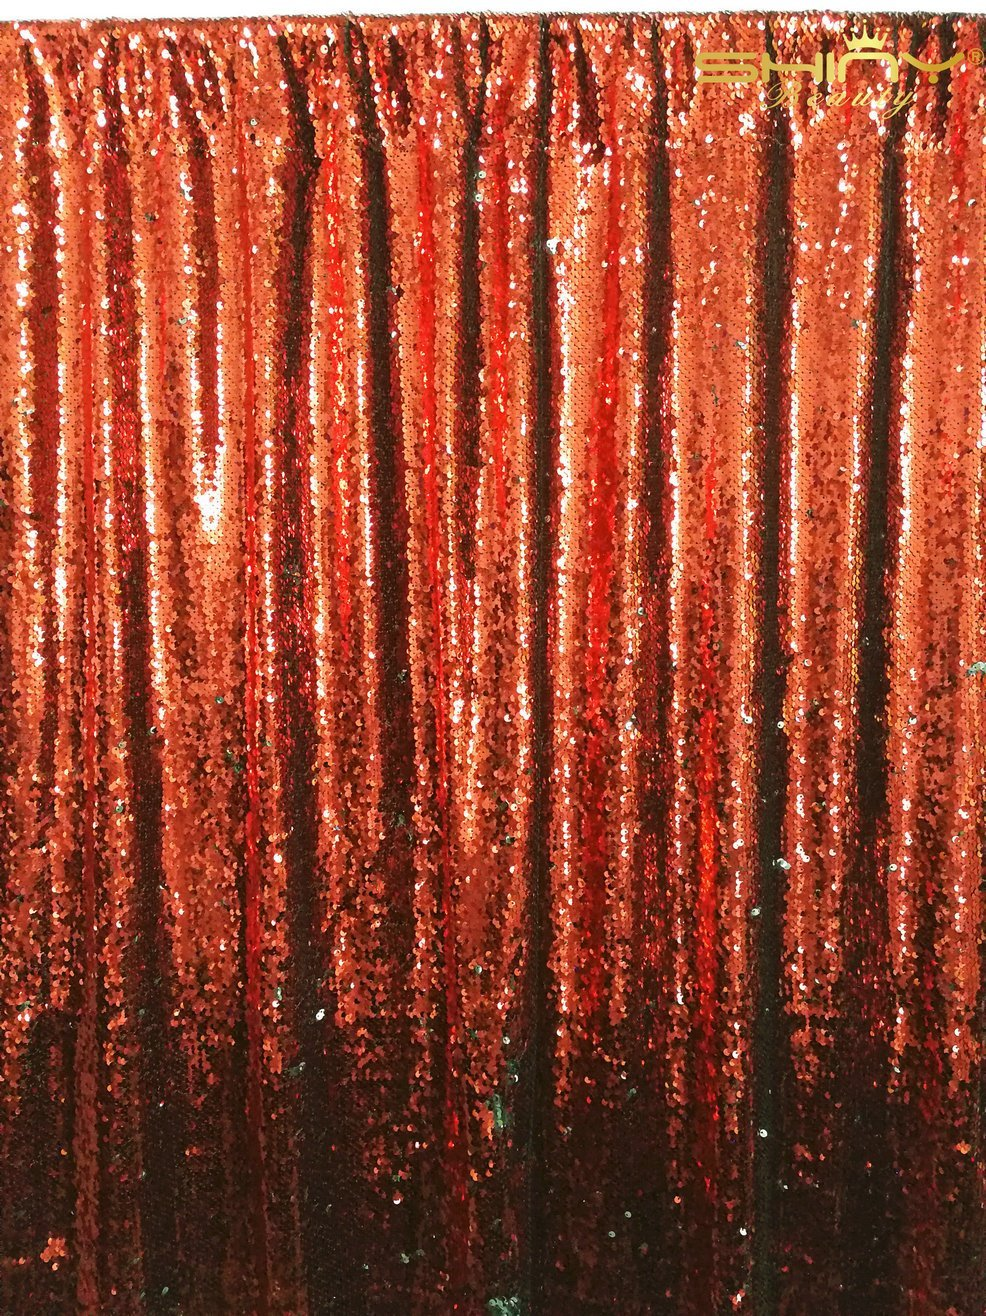 ShinyBeauty Reversible-Sequin Backdrop-Red&Silver-4FTx6FT,Mermaid Sequin Backdrops for Photography,Reversible Curtain For Backdrop,Glitz Backdrop